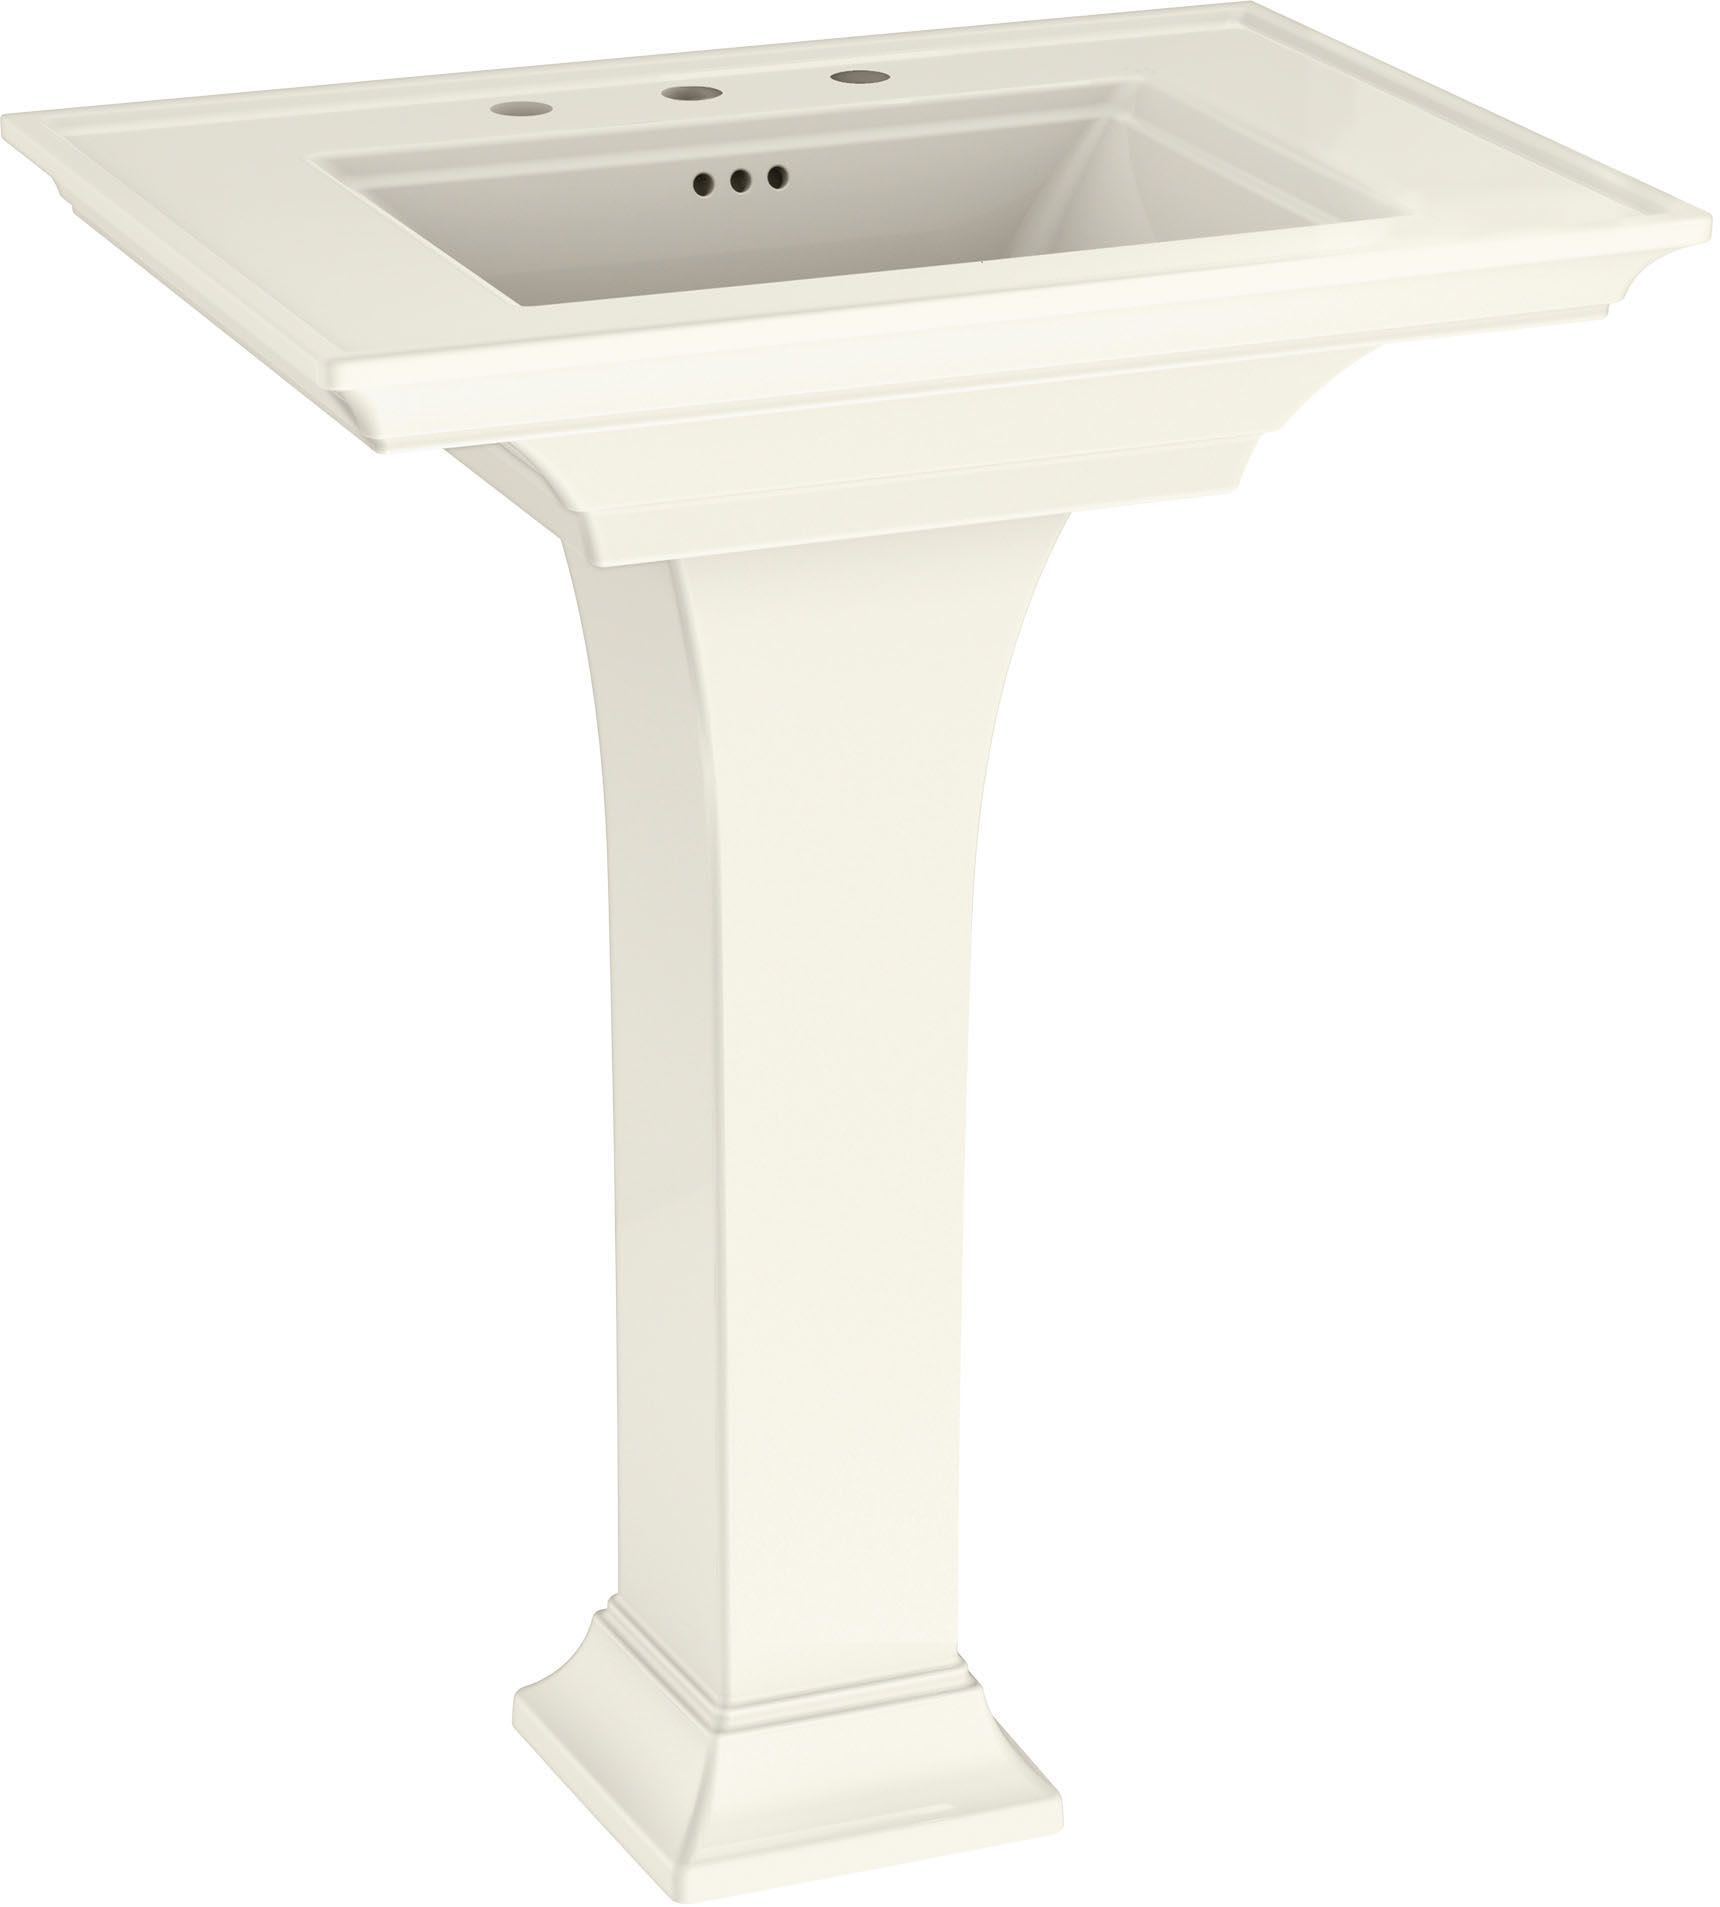 American Standard 0297800 222 Linen Town Square S 30 Rectangular Fireclay Pedestal Bathroom Sink With Overflow And 3 Faucets Holes At 8 Centers Faucet Com